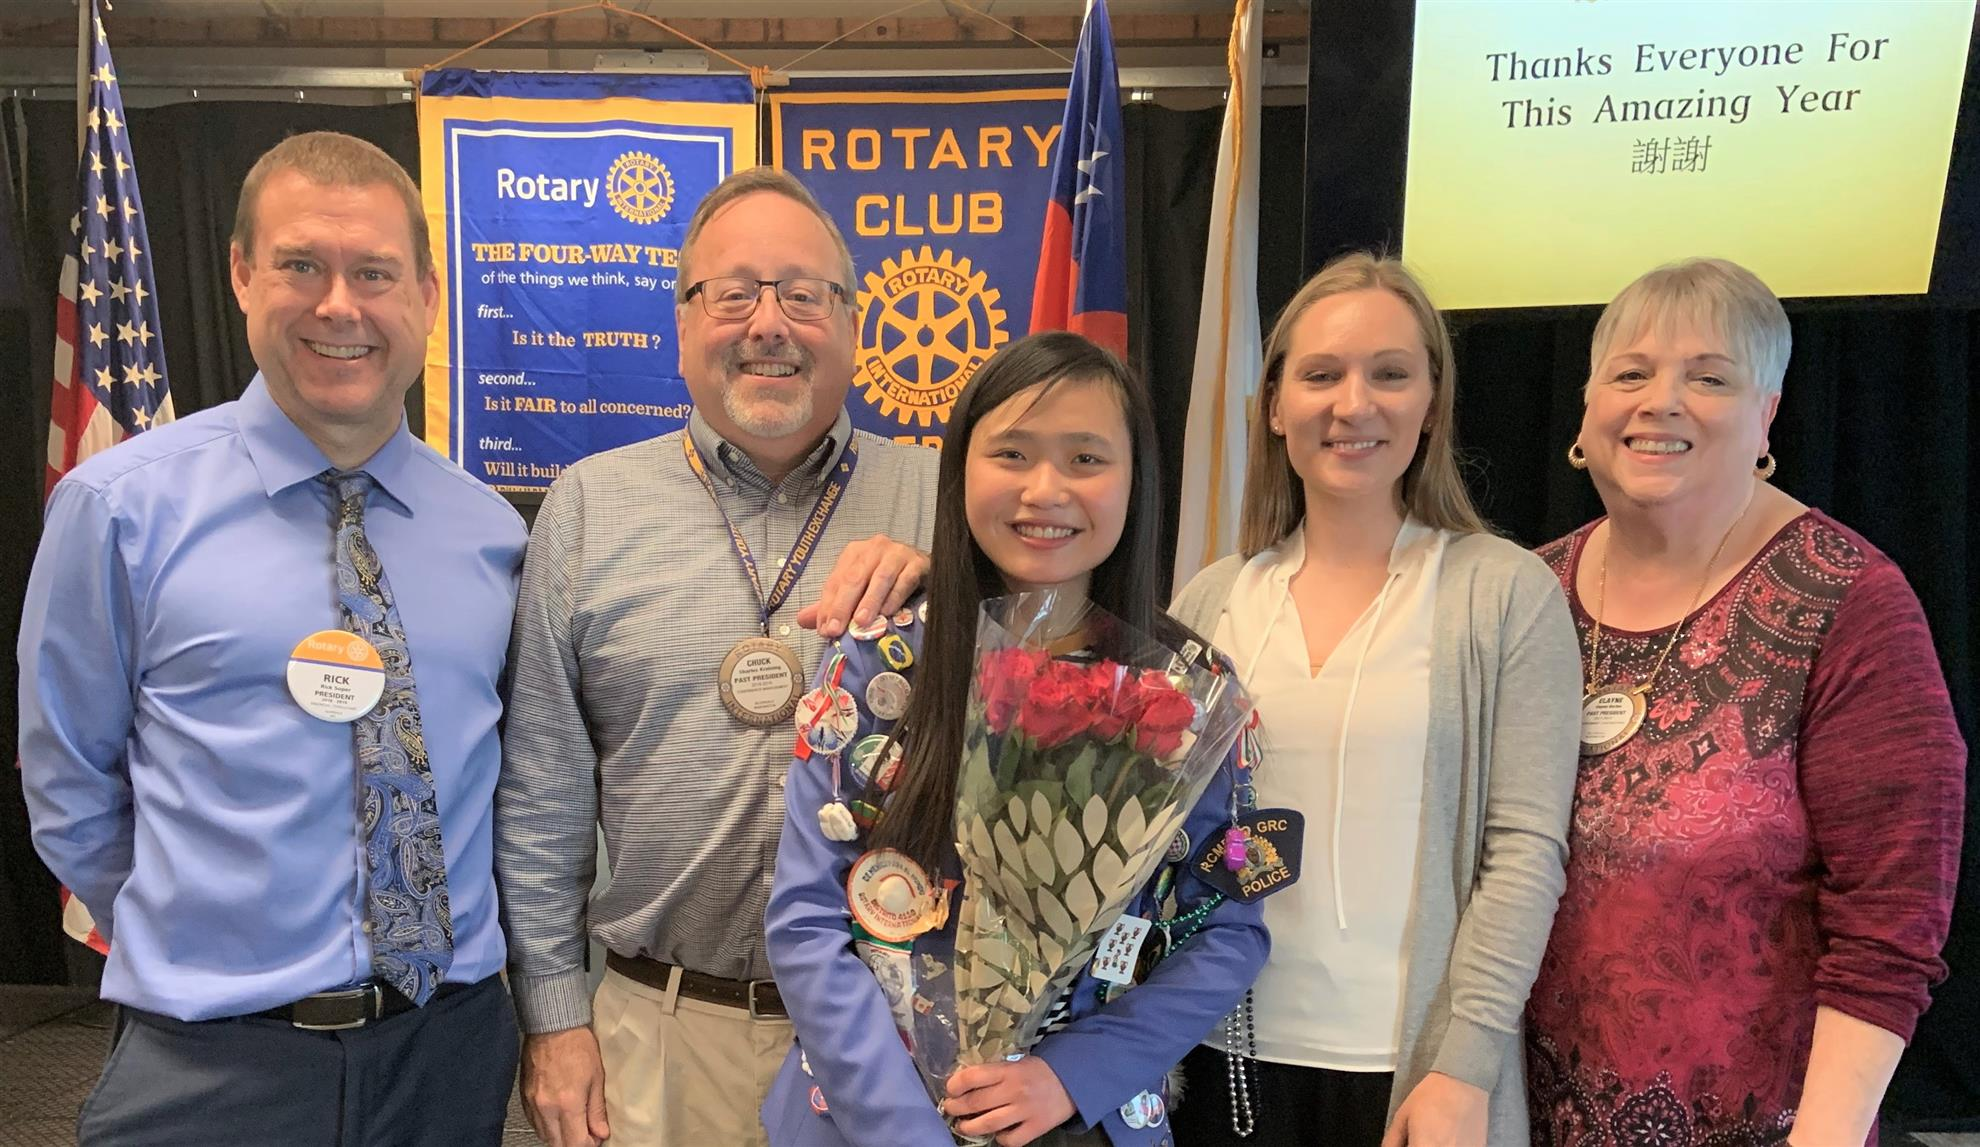 Stories | Rotary Club of Silverdale